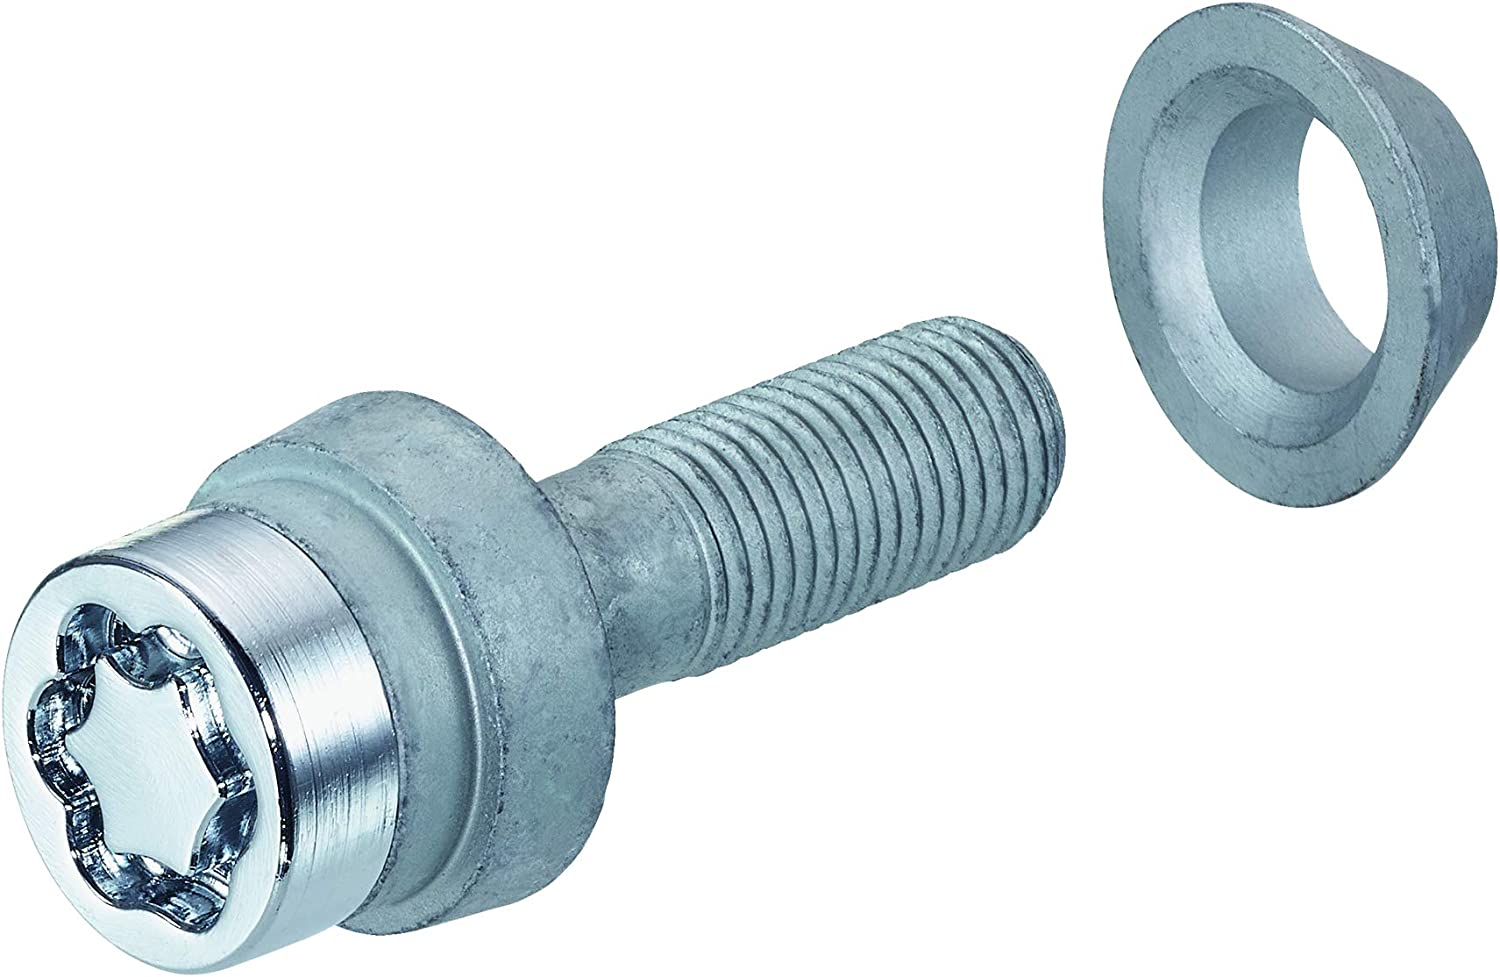 Hex Size 17mm McGard 27562SU Wheel Lock Bolts PCD//Offset Screws M12 x 1,25 Shaft Length 28,0 mm Overall Length 58,2 mm Floating Cone seat Key Diameter 25,8 mm